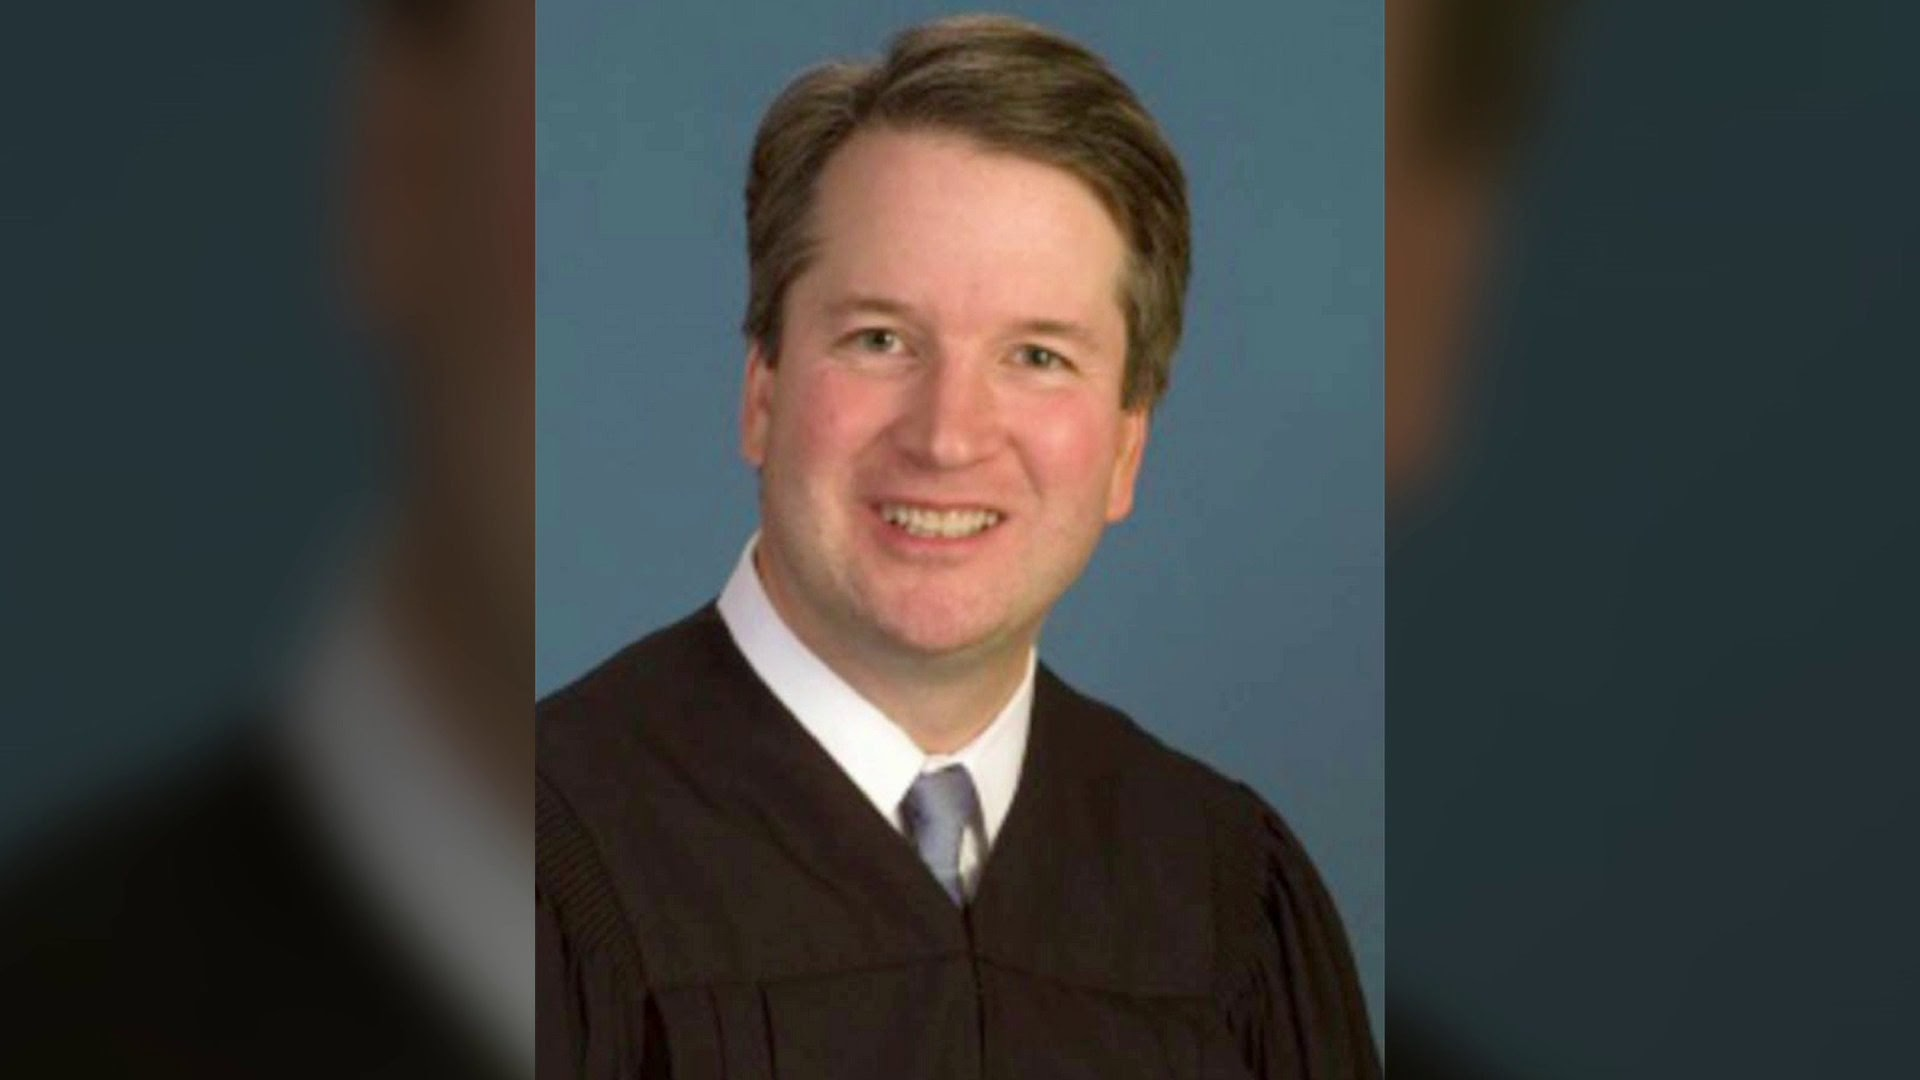 Four keys to Trump's SCOTUS pick, Brett Kavanaugh